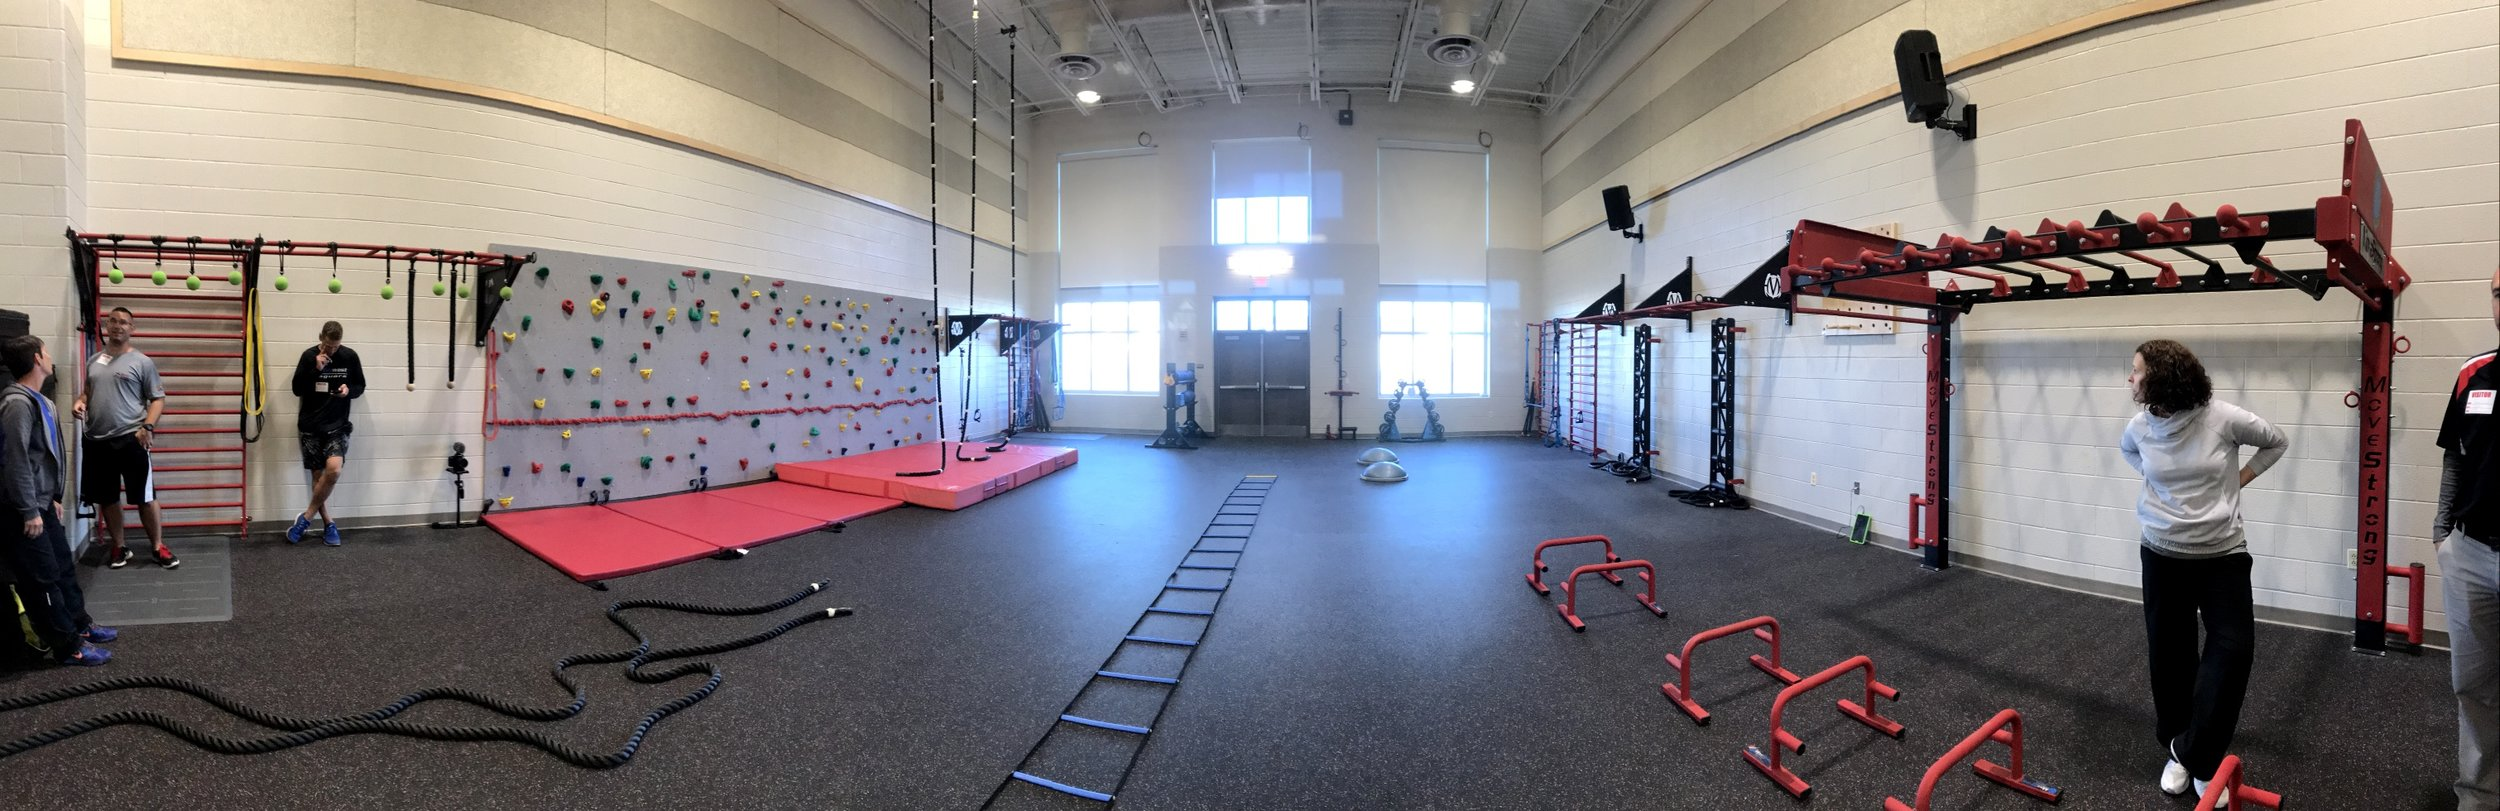 Middle School physical education room